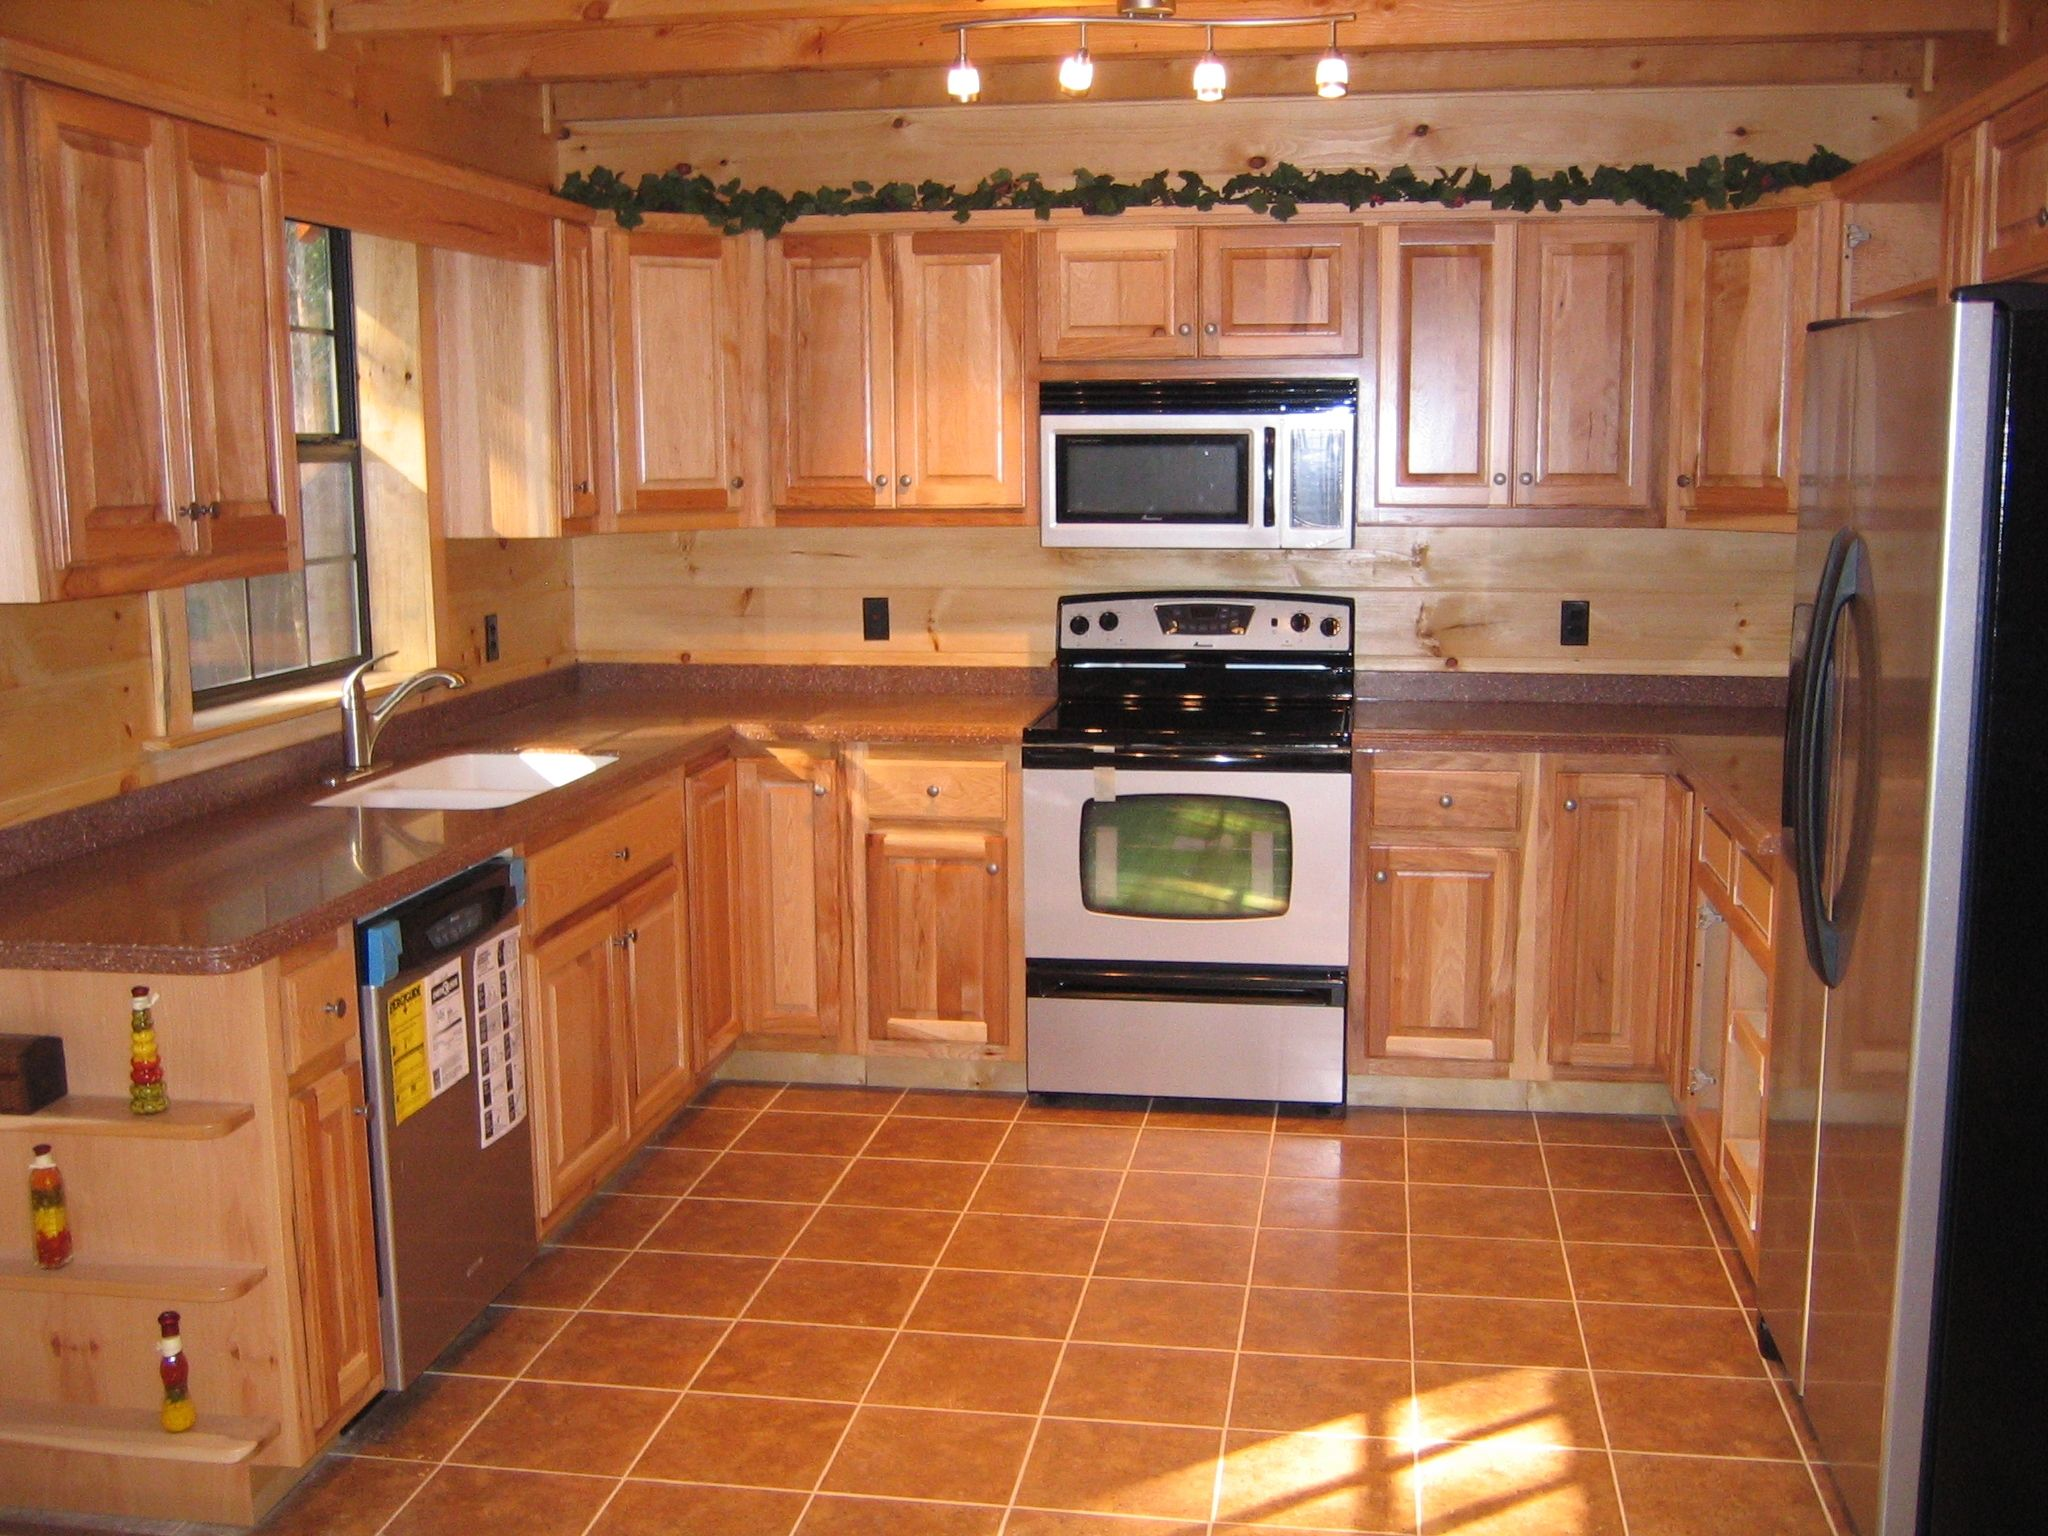 Cedar Wood Kitchen Cabinets Wood Kitchen Cabinets Kitchen Remodel Design Cherry Wood Kitchen Cabinets